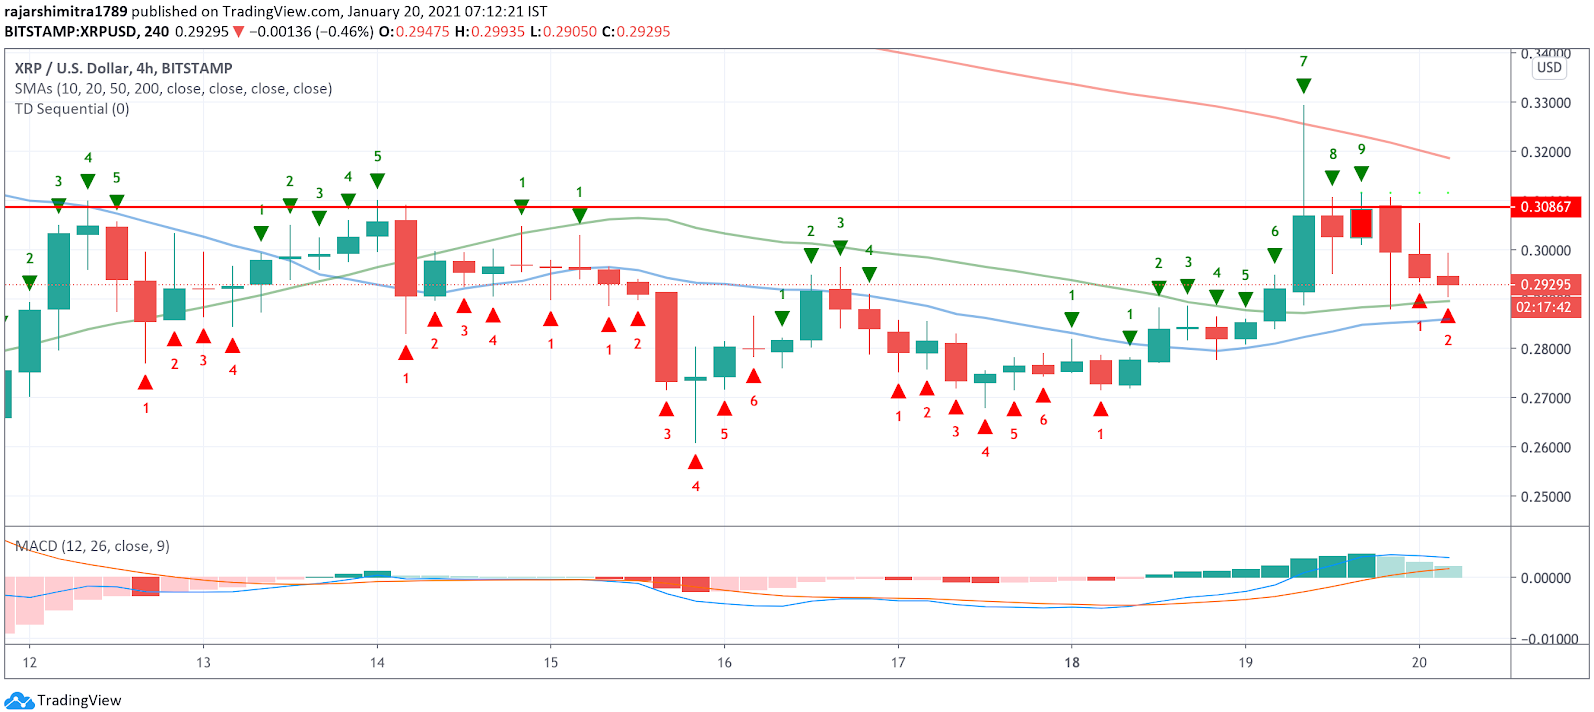 xrp/usd 4-hour chart 012021